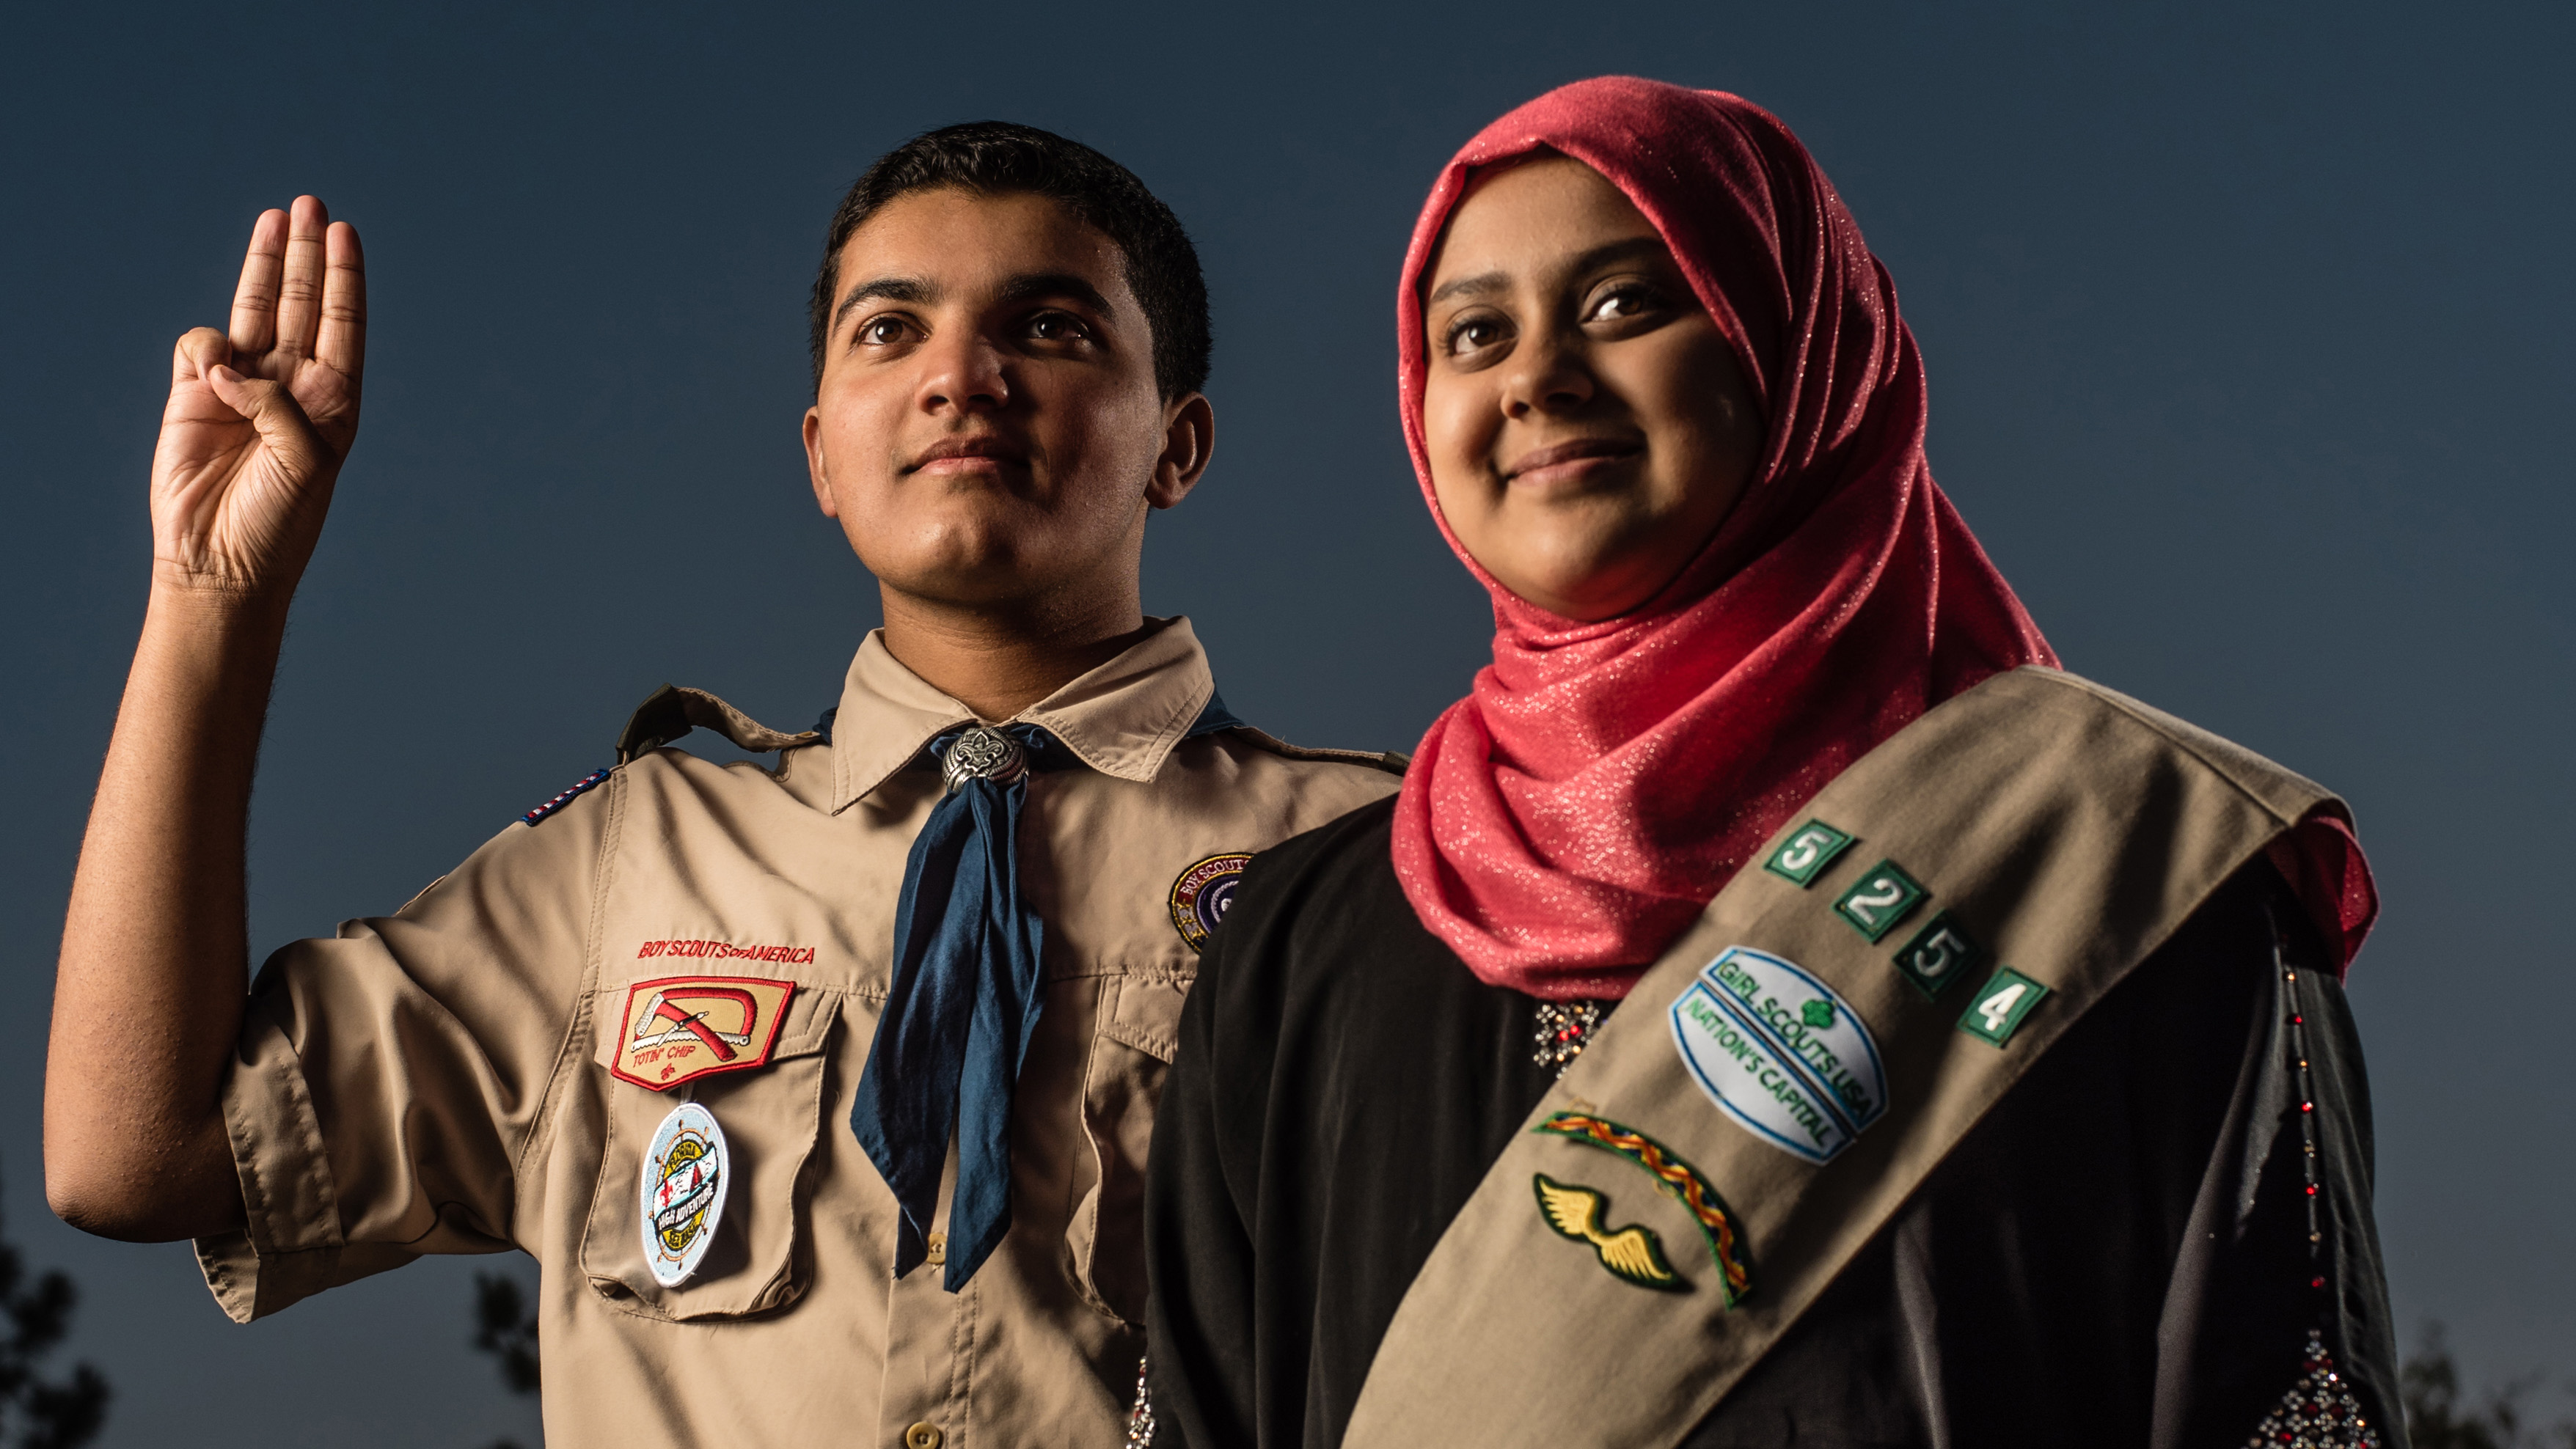 Muslim Scouts pursue an American tradition — in an America wary of Muslims